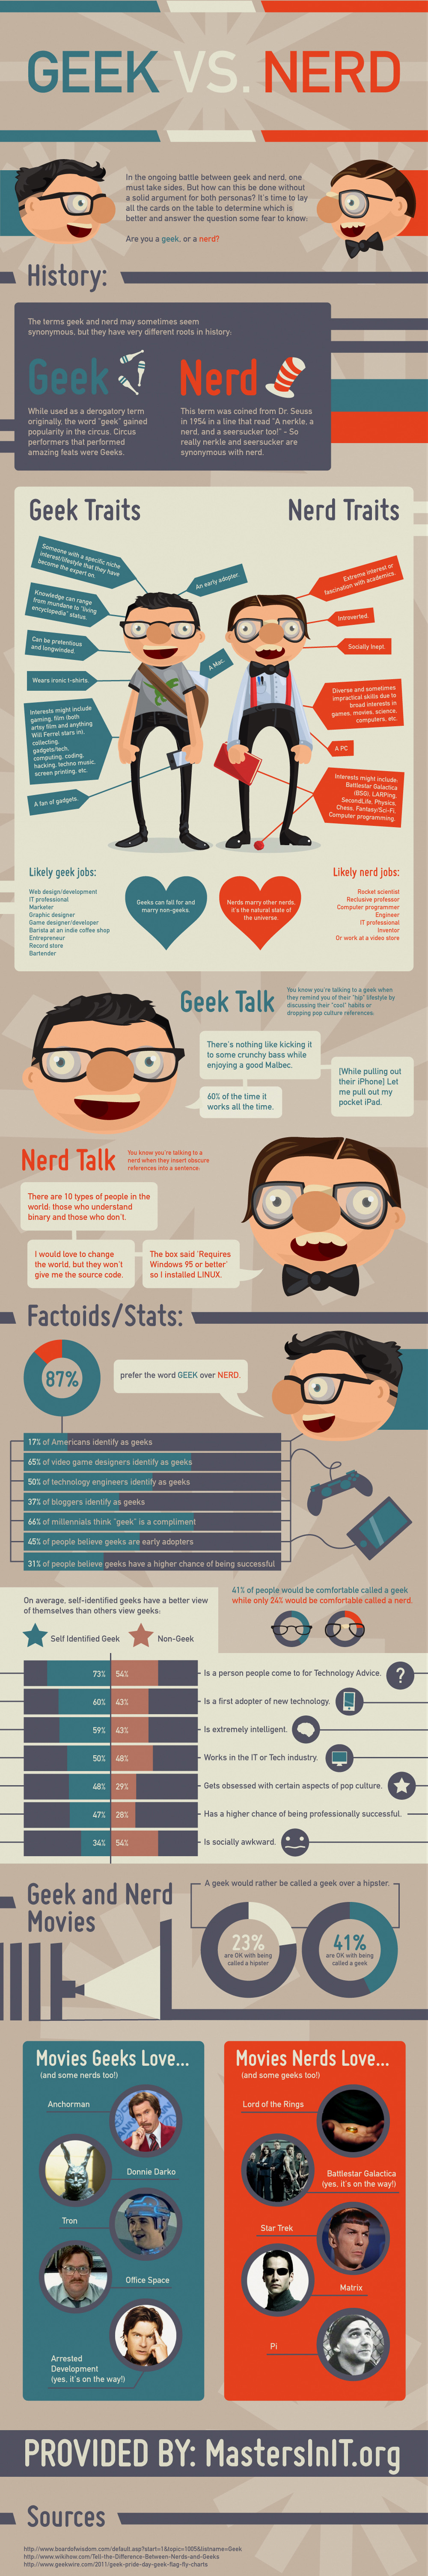 Geeks_Vs_Nerds